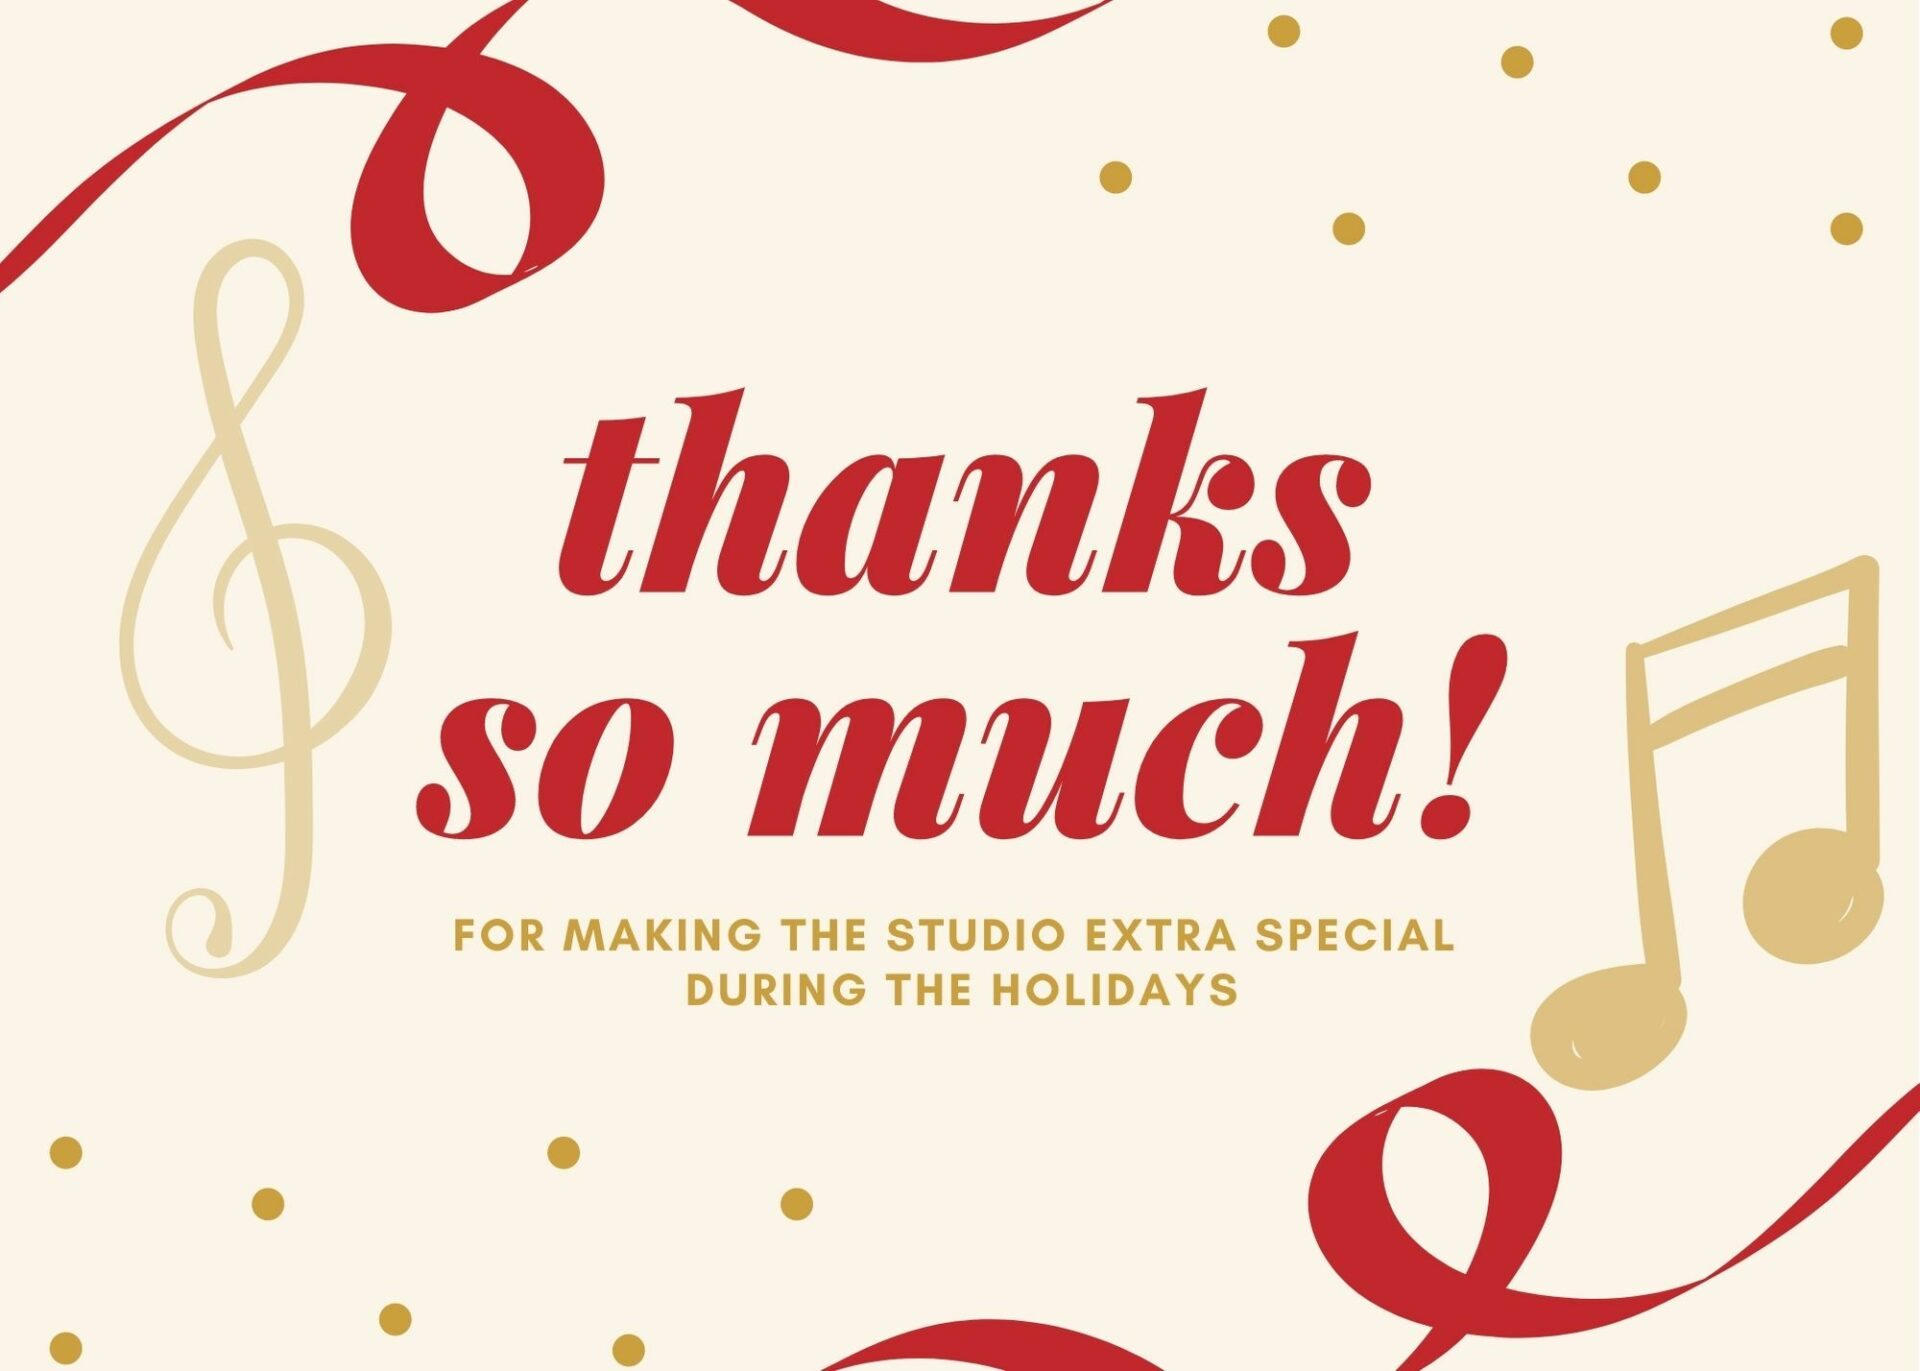 for making the Studio extra special During the HOlidays